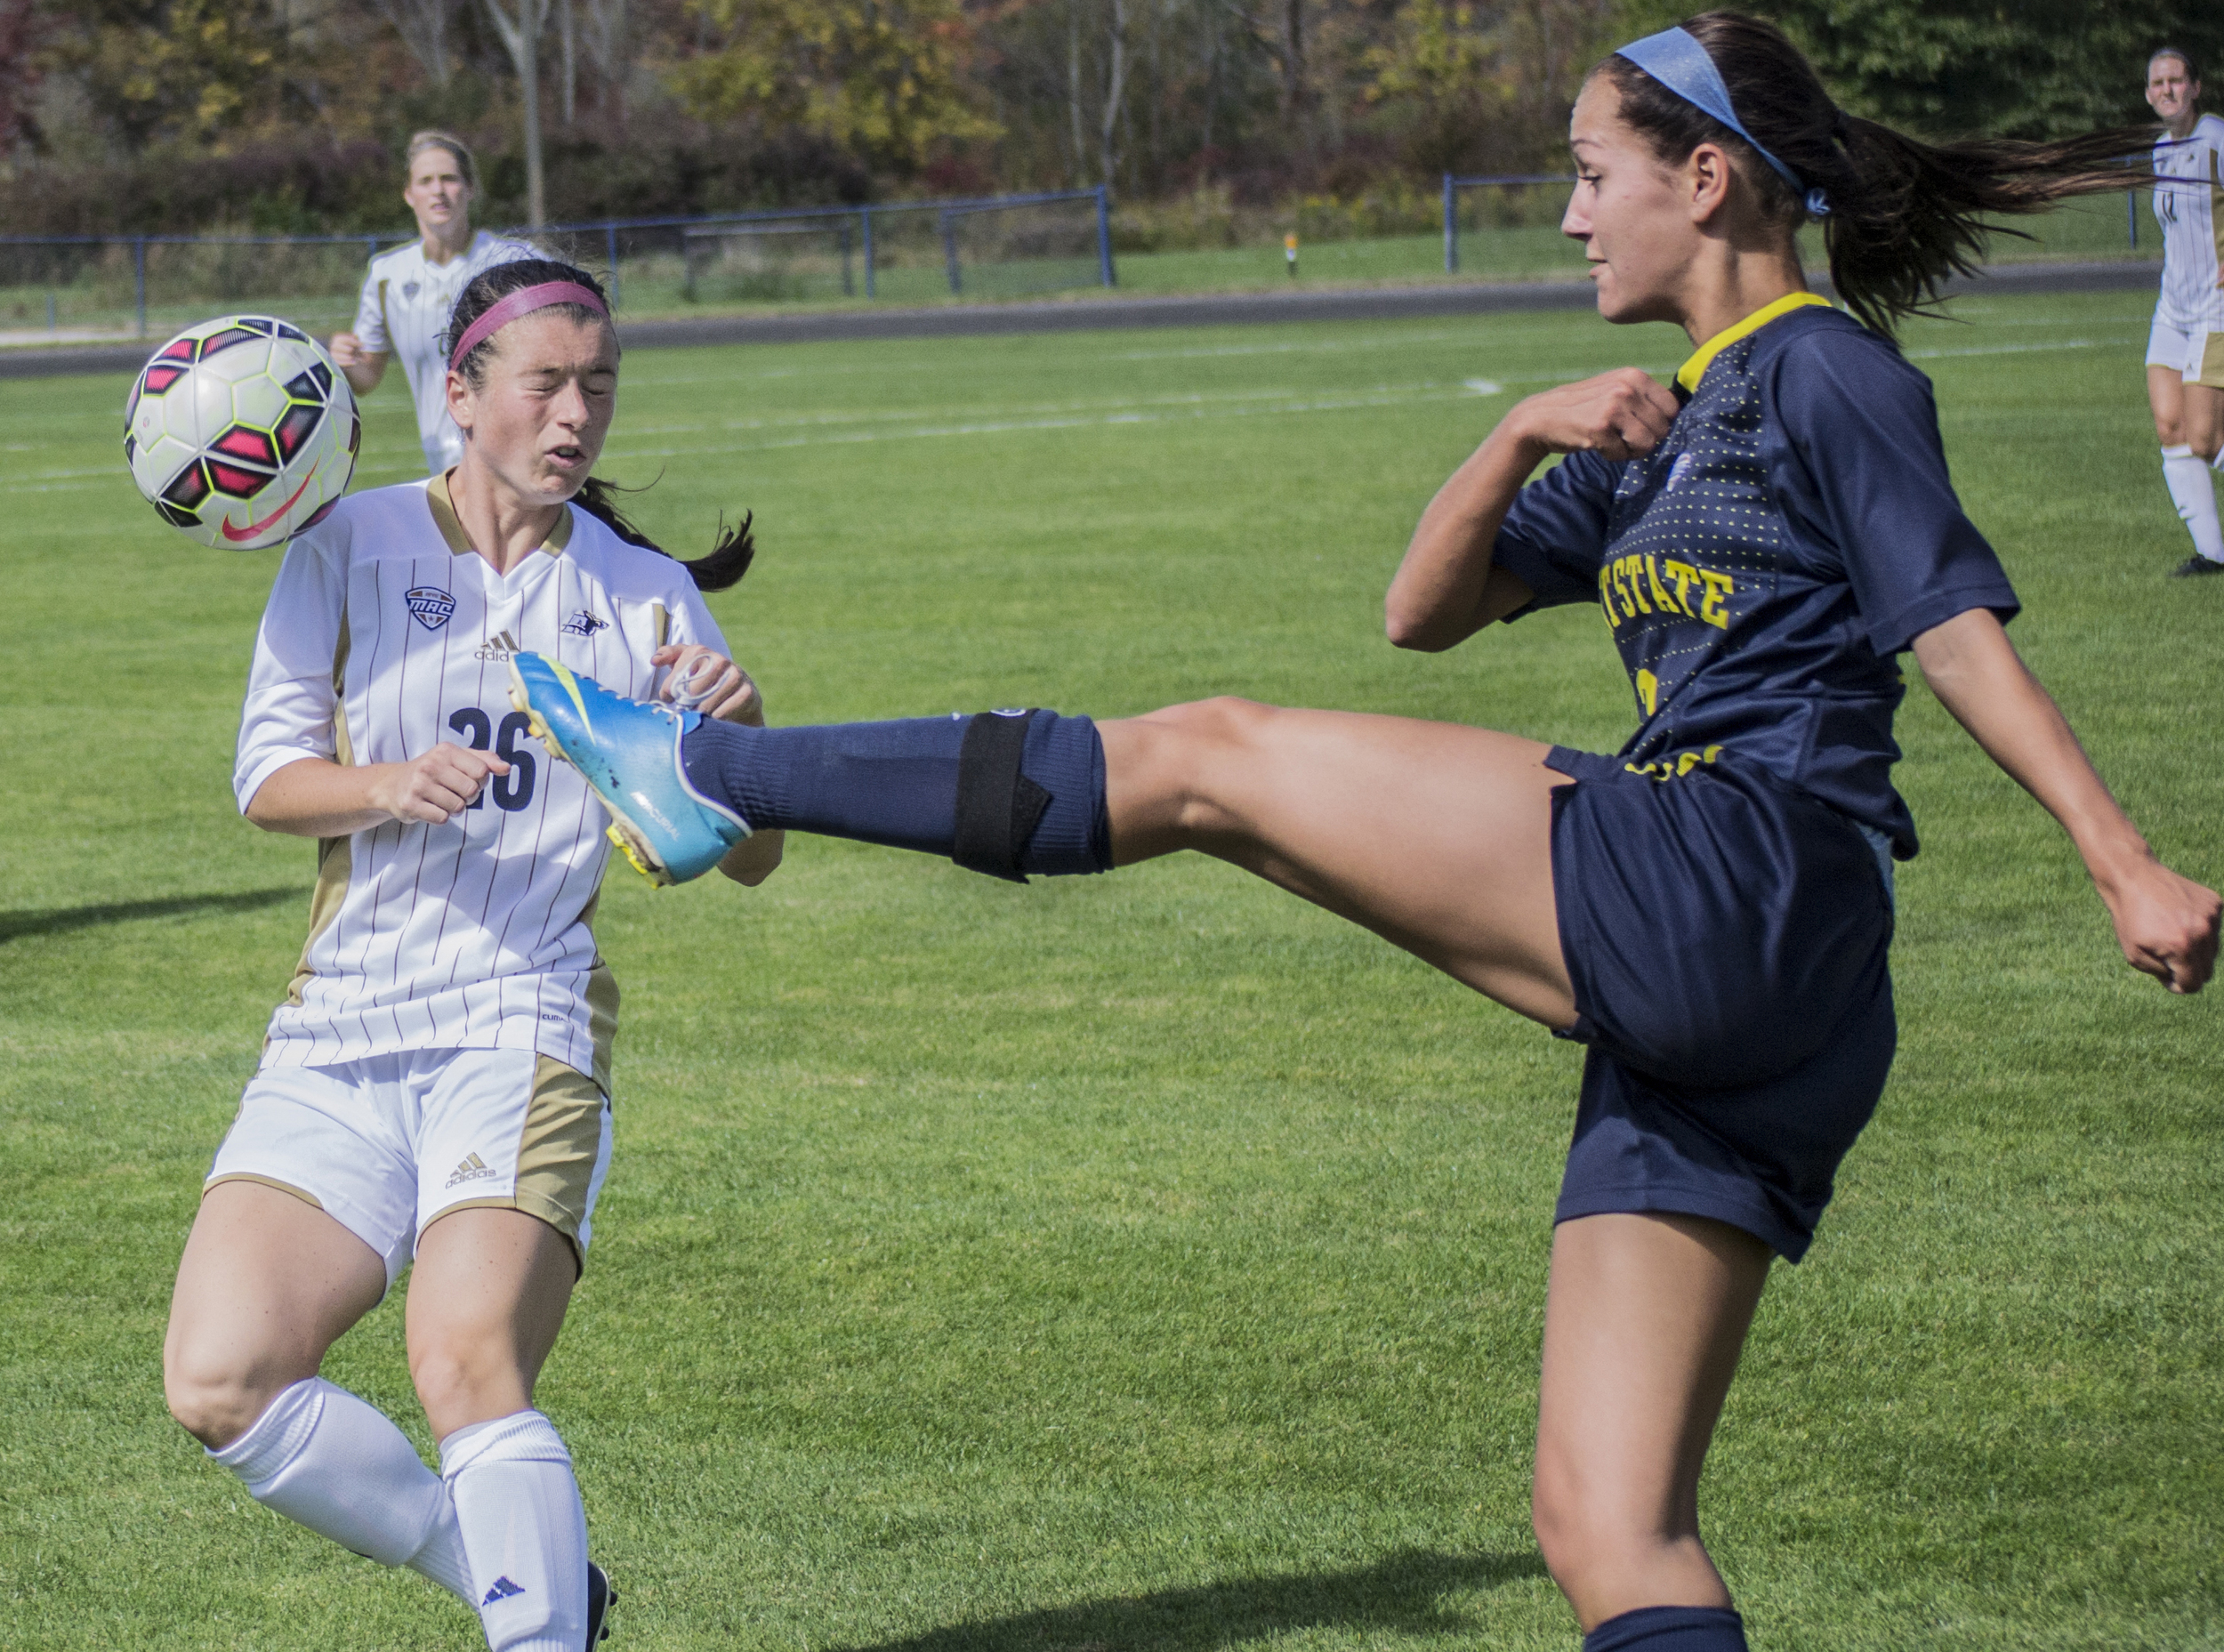 University of Akron Senior midfielder Danielle Reymann gets hit in the face with the ball during the Kent State versus Akron womens soccer rivalry game at Zoeller field on Sept. 28, 2014. Kent State went on to beat Akron 3-0 with a strong defense that kept Akron from taking a single shot on goal.